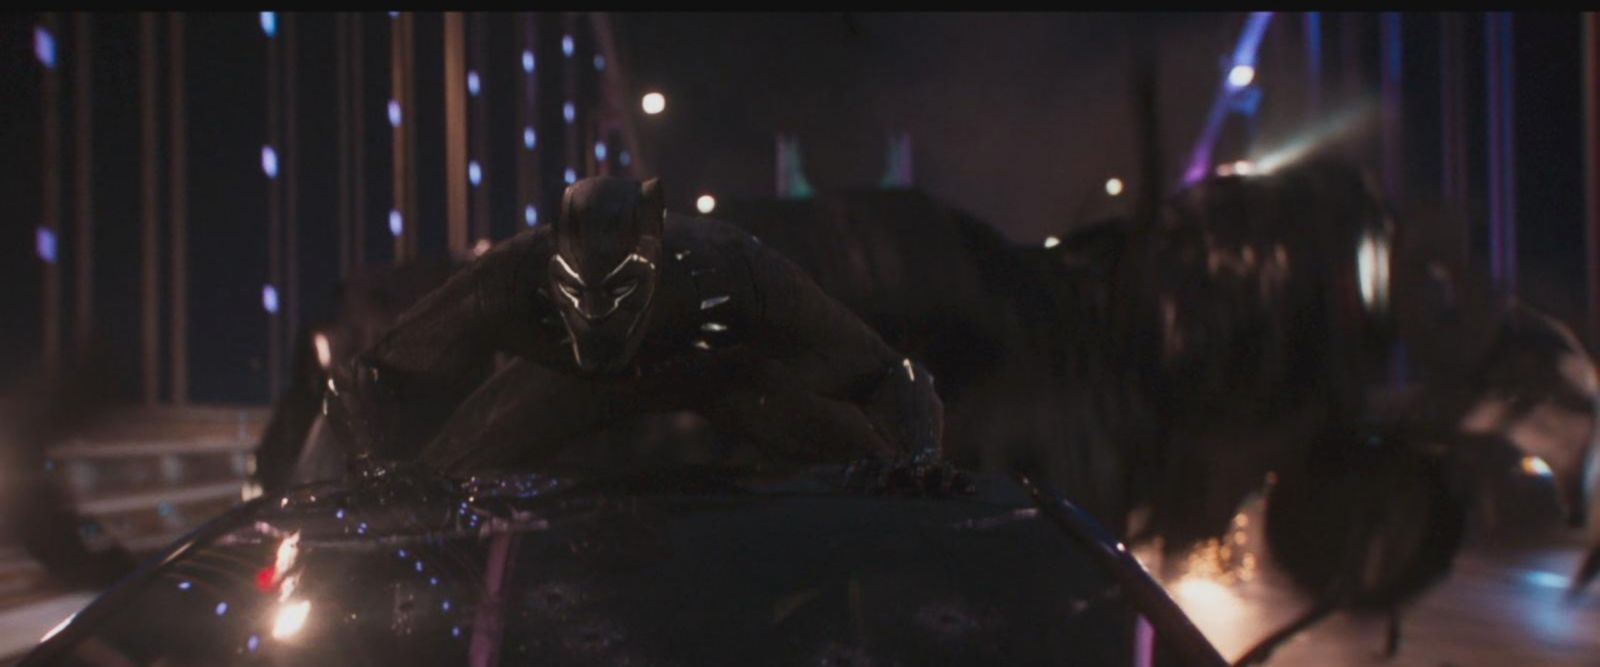 VIDEO: 'Black Panther' breaking records